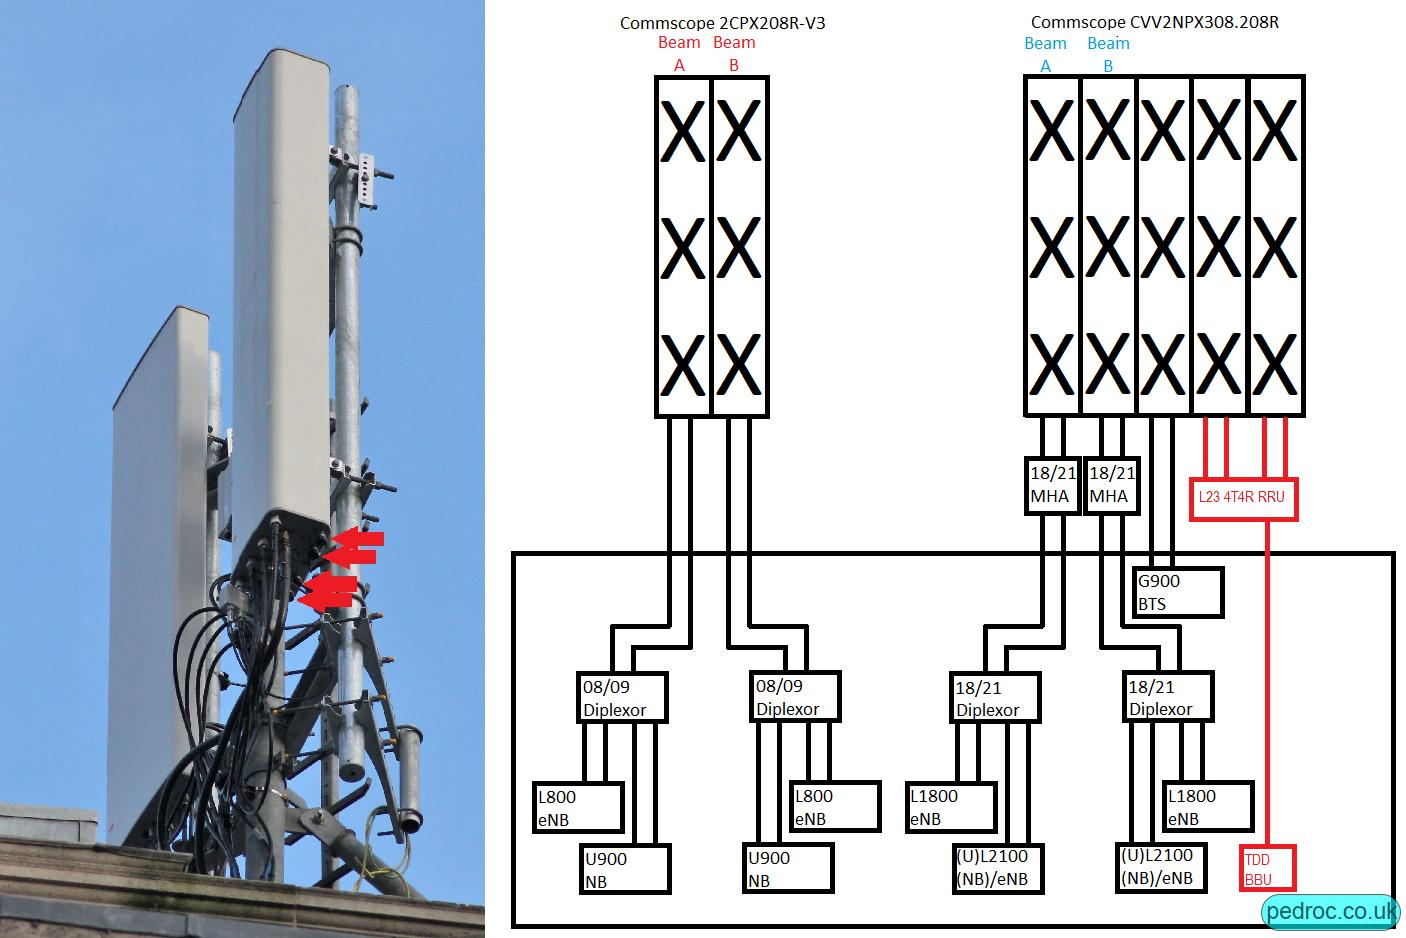 Antenna Schematics for the 2300MHz masts